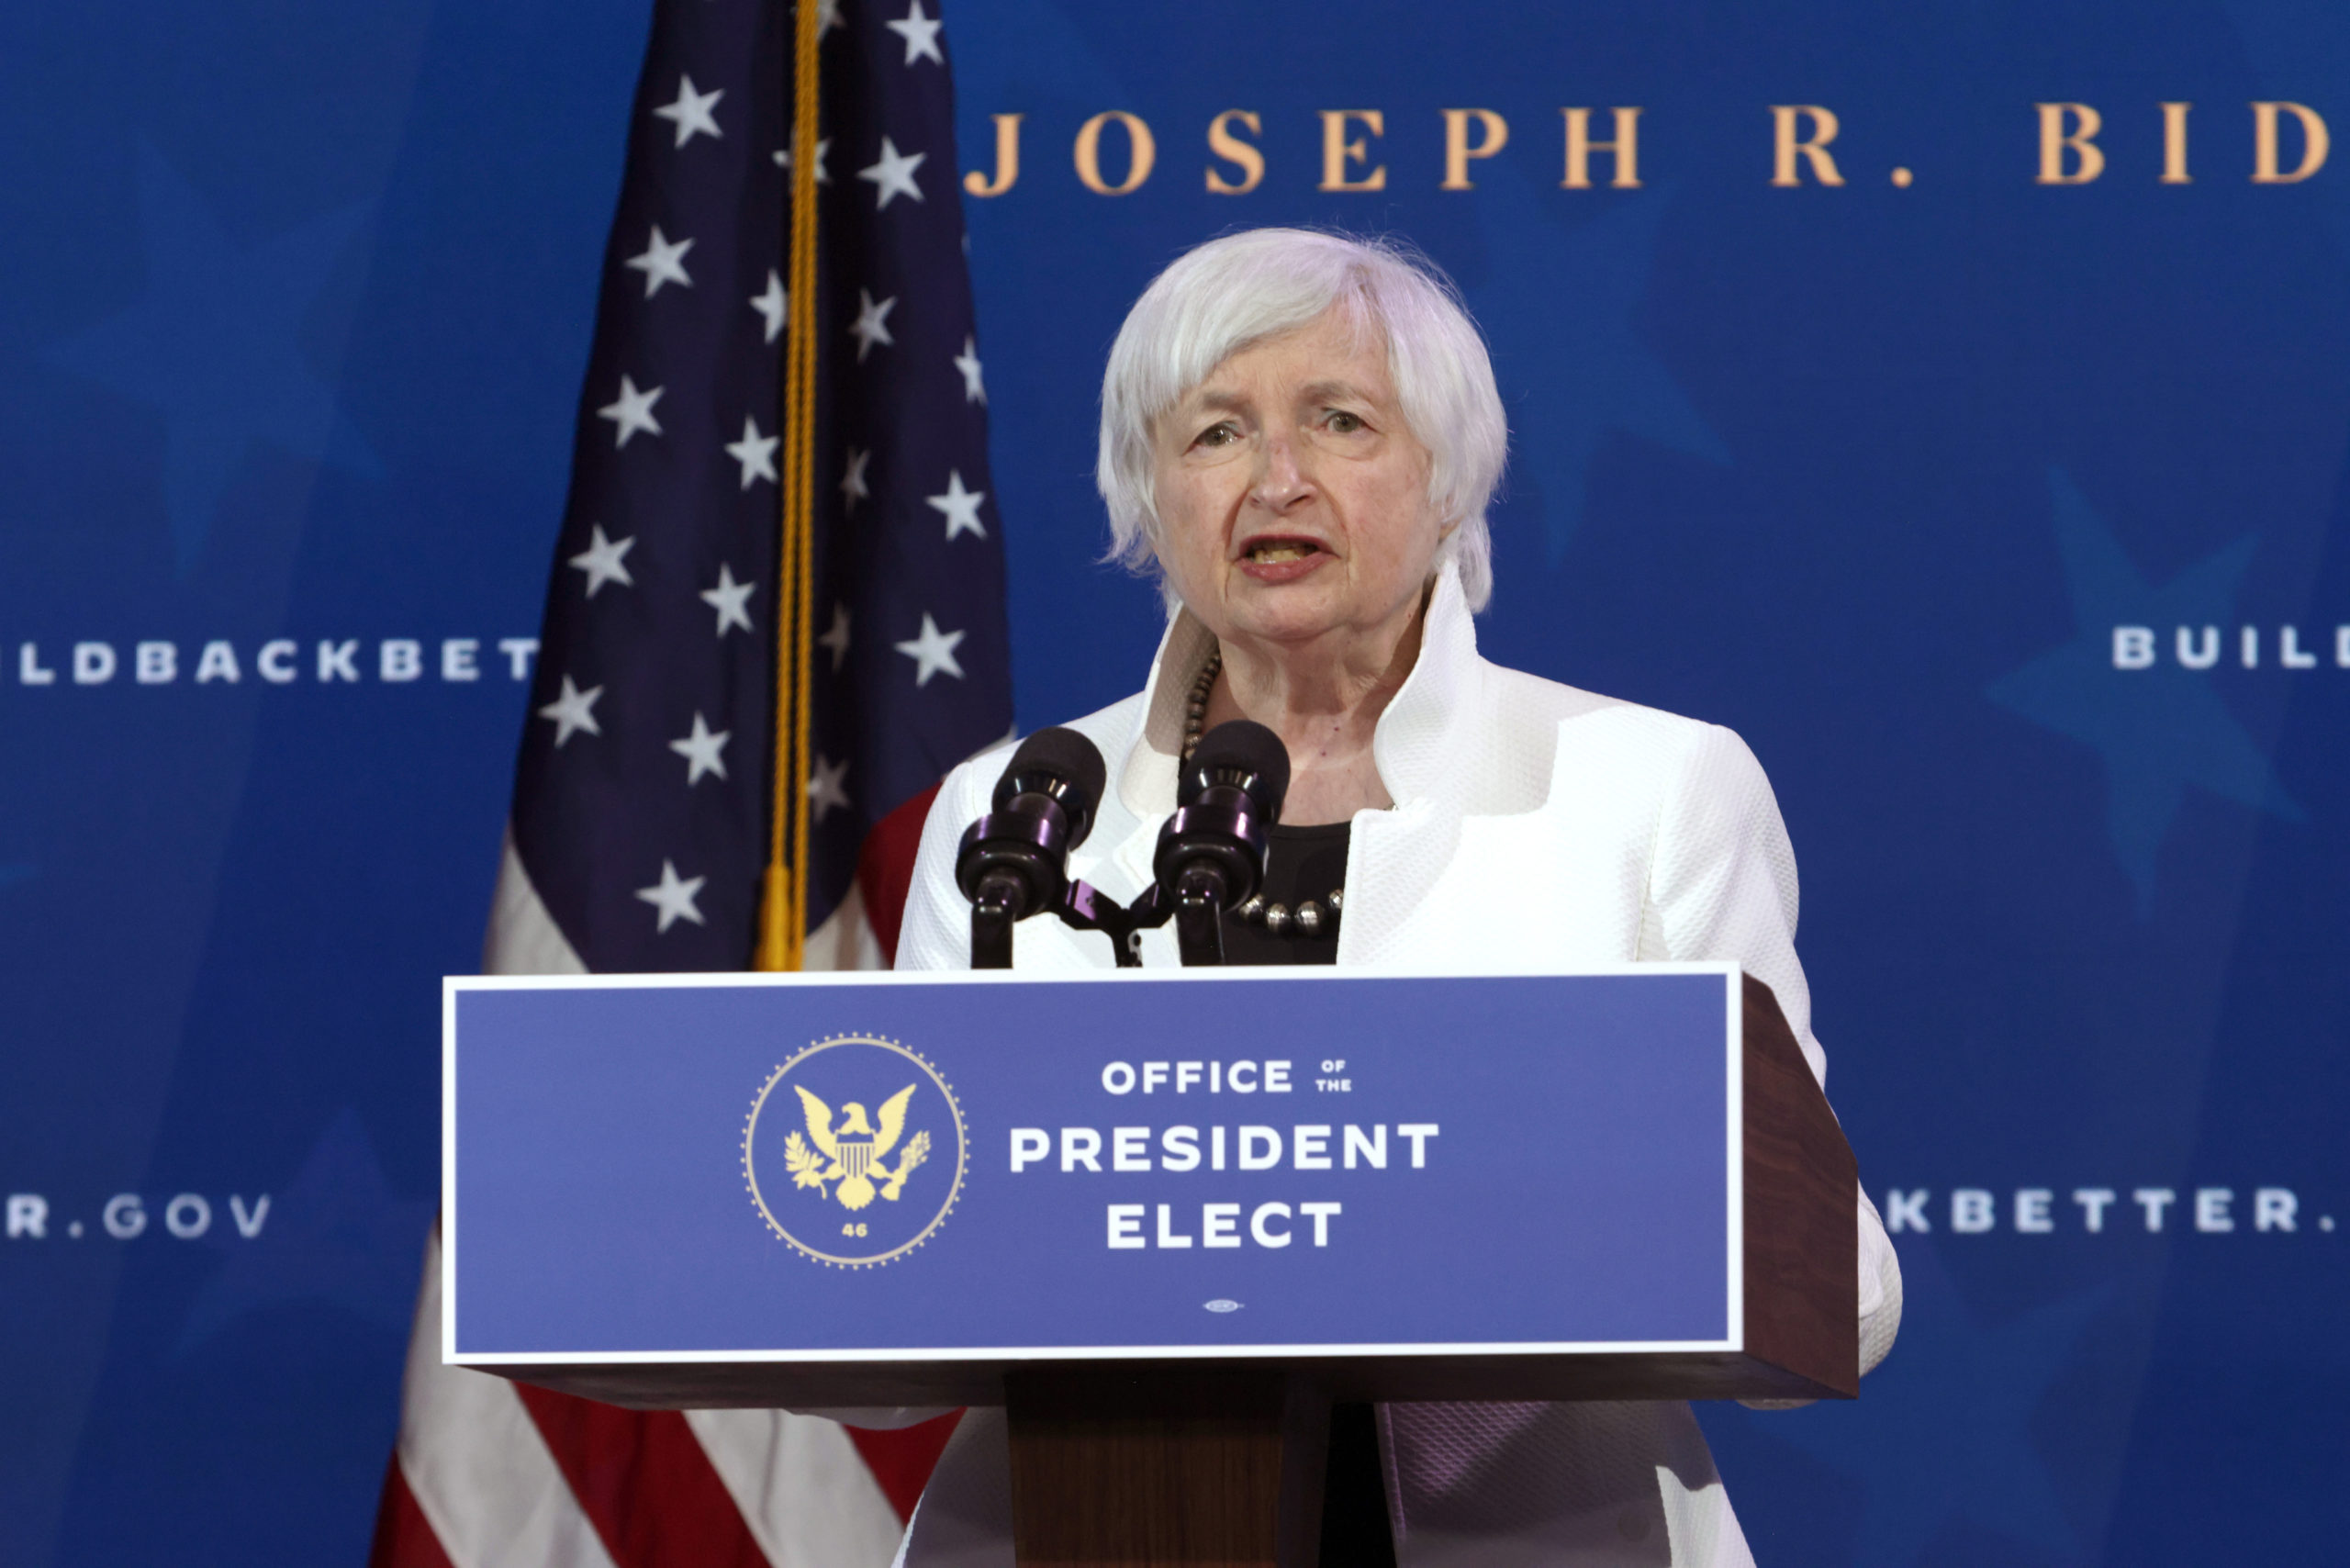 U.S. Secretary of the Treasury nominee Janet Yellen speaks during an event to name President-elect Joe Biden's economic team at the Queen Theater on December 1, 2020 in Wilmington, Delaware. (Getty Images)